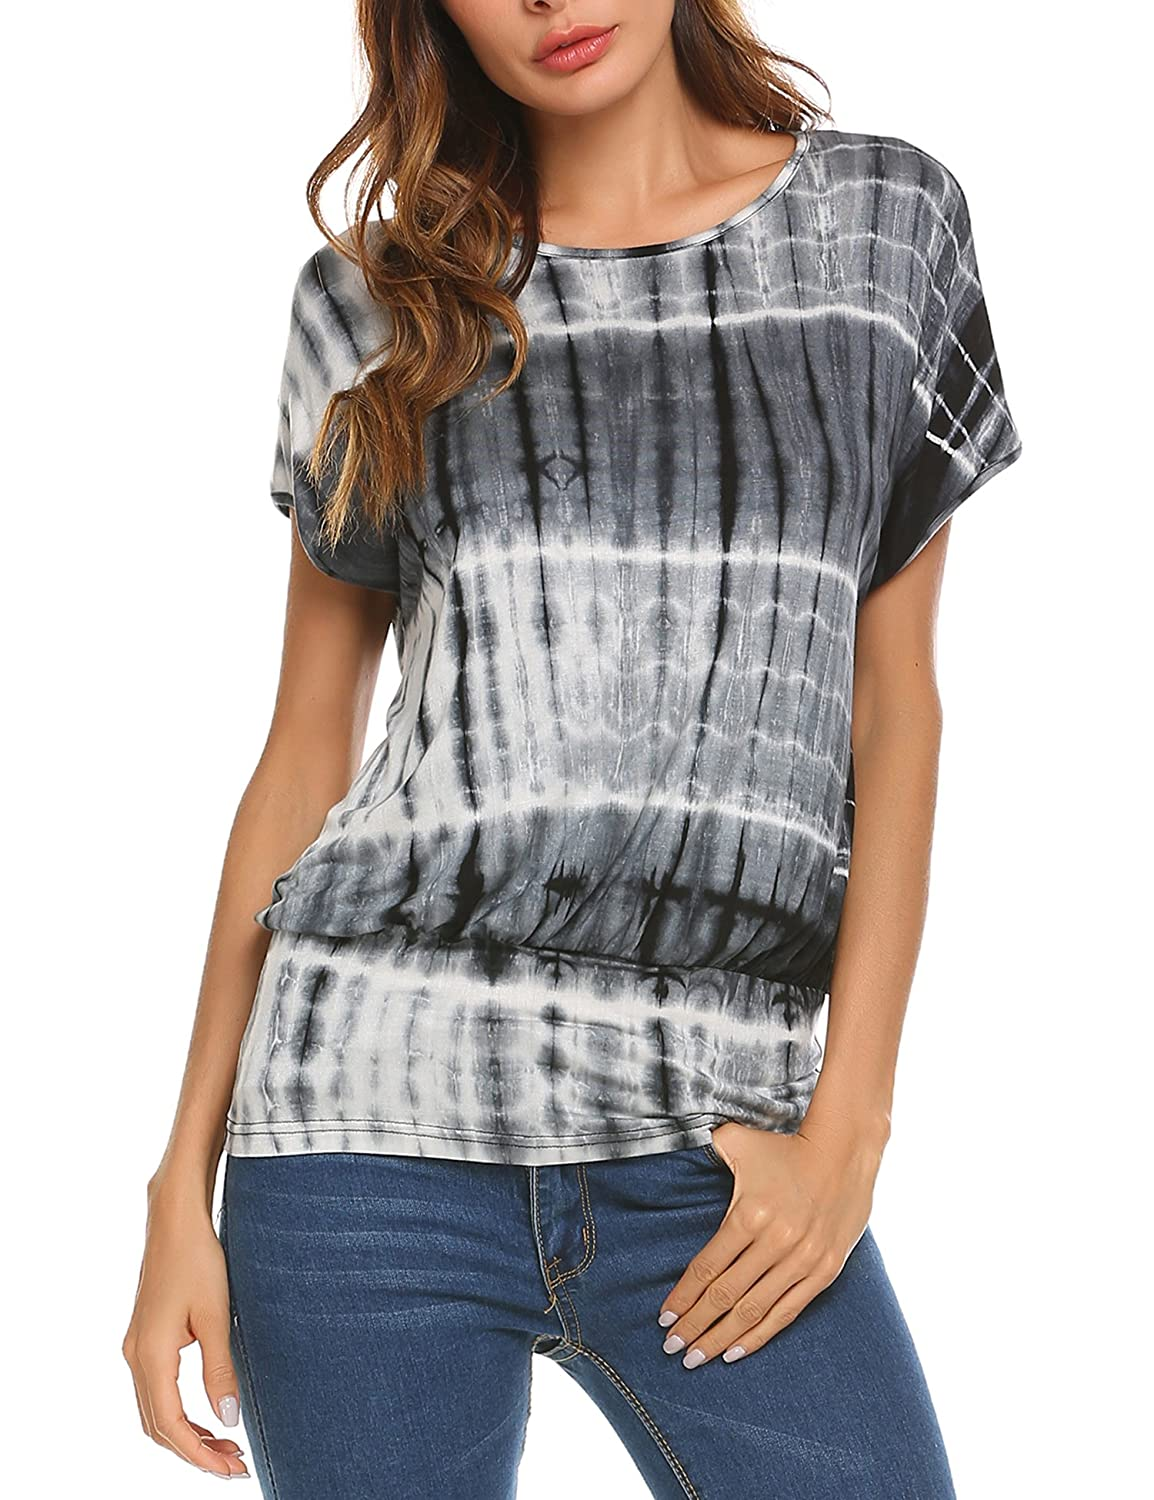 3bce7cc181b79c ... super stretchy fabric, soft against skin, lightweight, not see through.  Imported Pull On closure. Short batwing sleeve, scoop neck, banded bottom,  ...